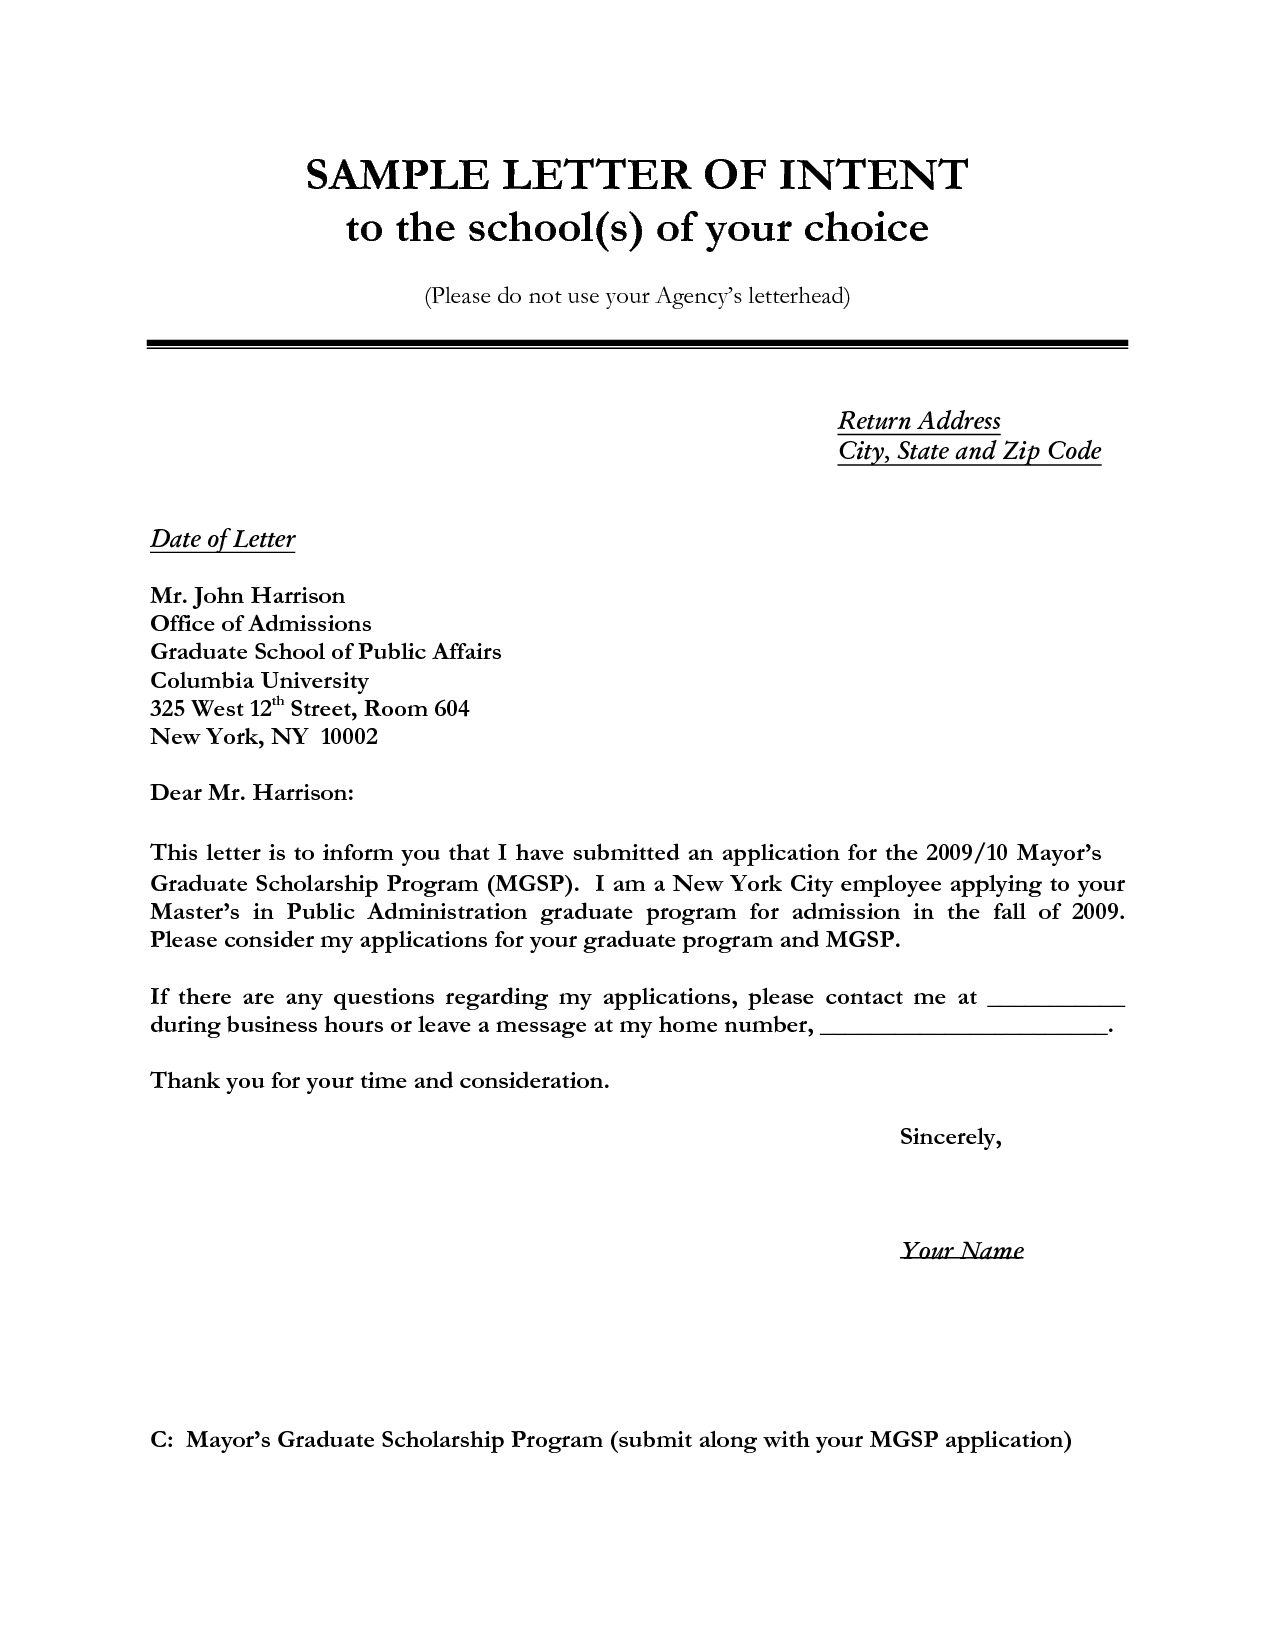 Letter Of Intent Email Template - Letter Of Intent Sample